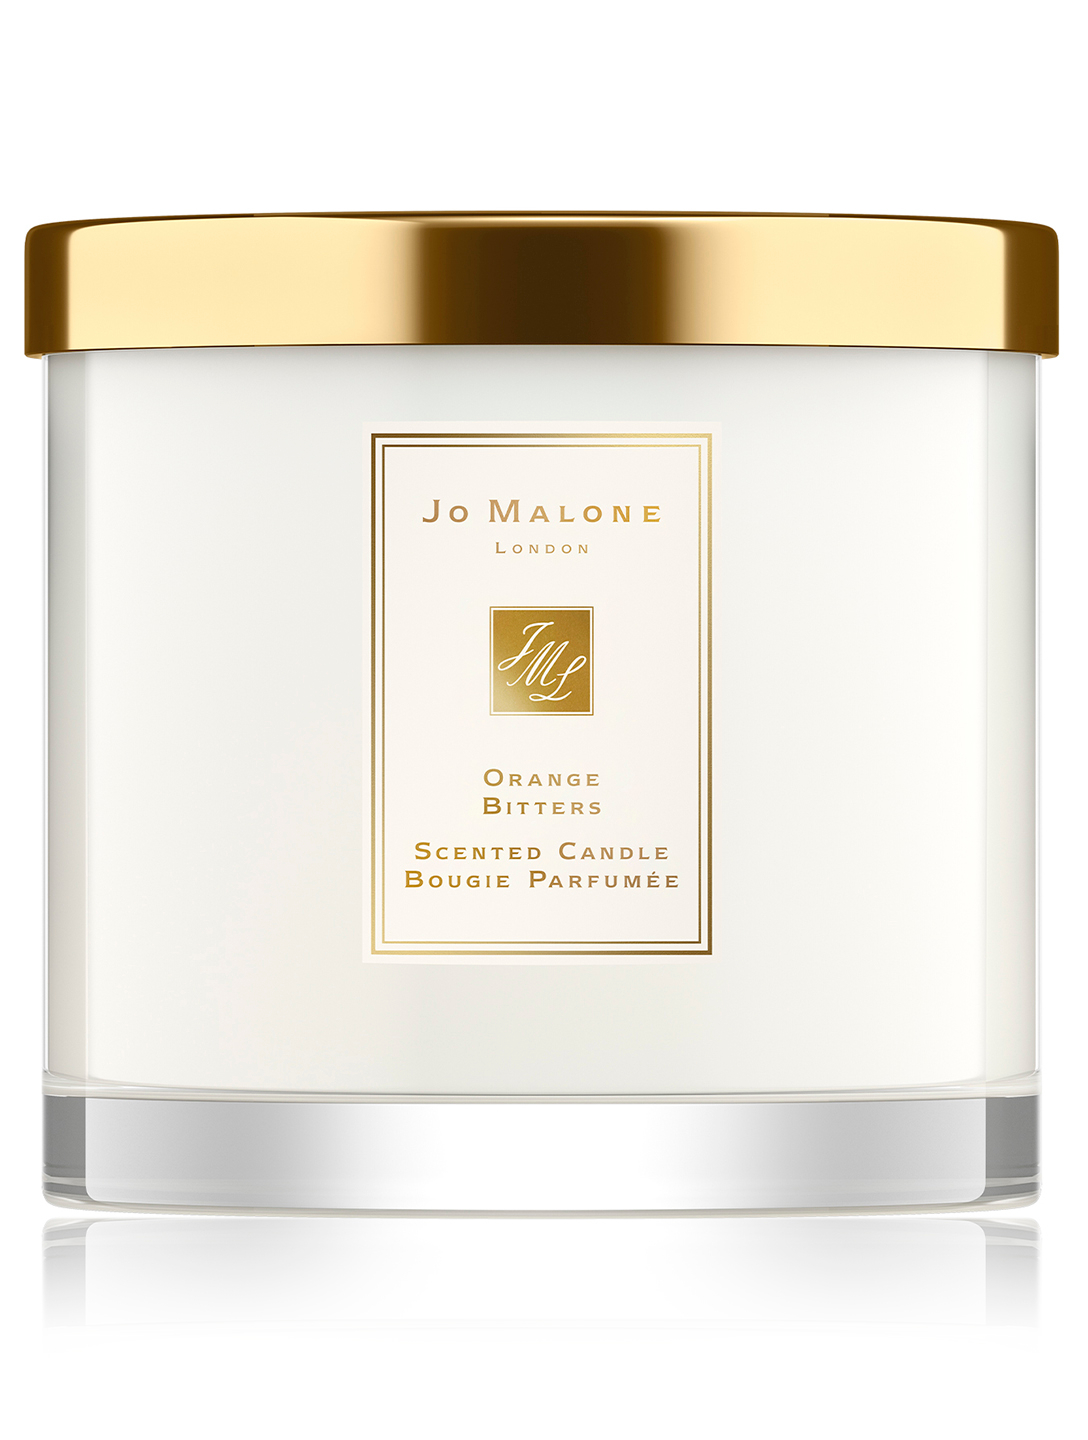 JO MALONE LONDON Orange Bitters Scented Deluxe Candle Beauty